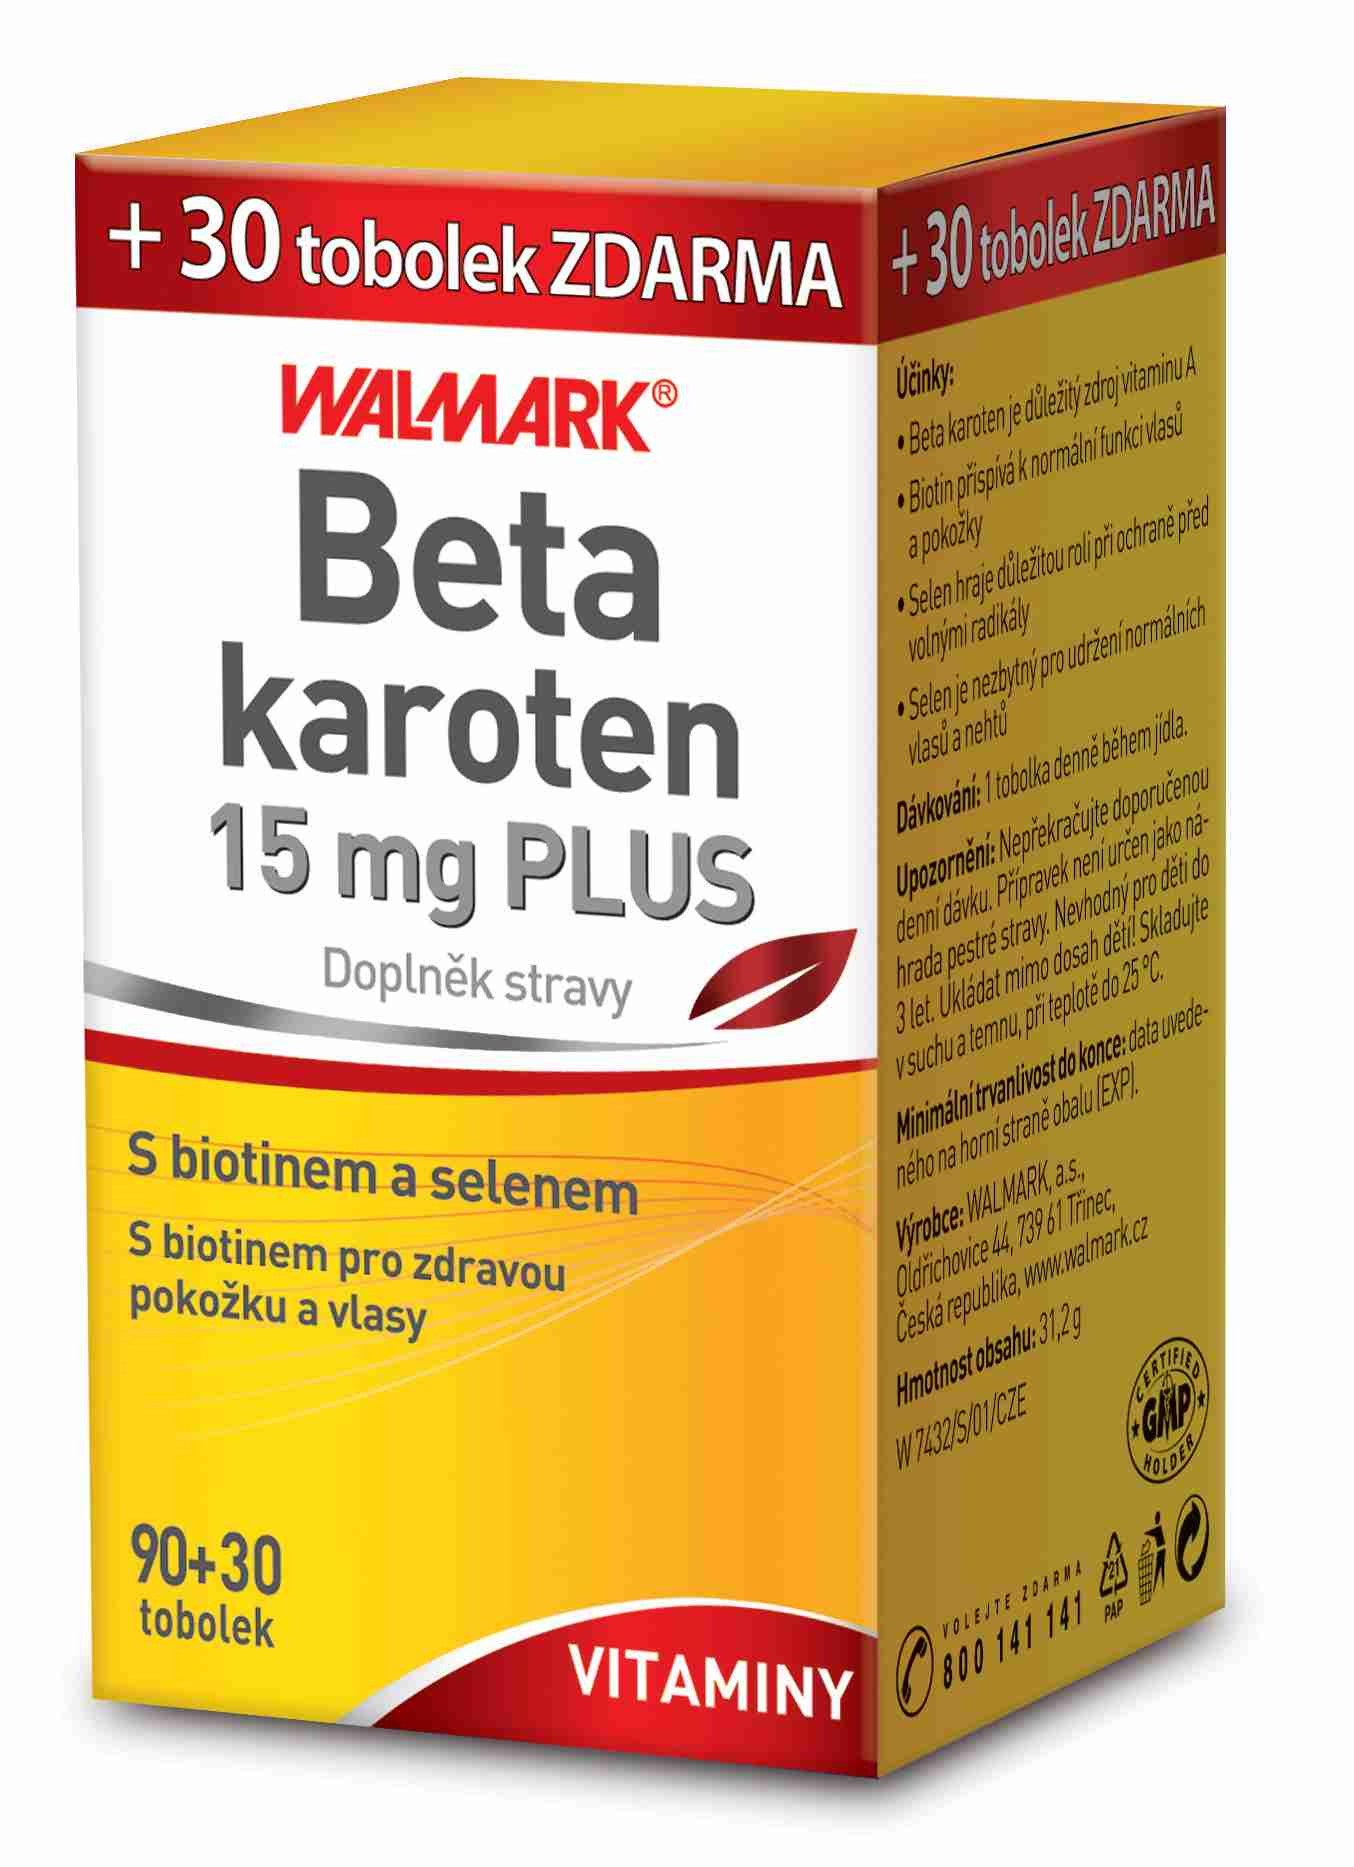 Walmark Beta karoten PLUS 15 mg 90 tob.+ 30 tob. ZDARMA